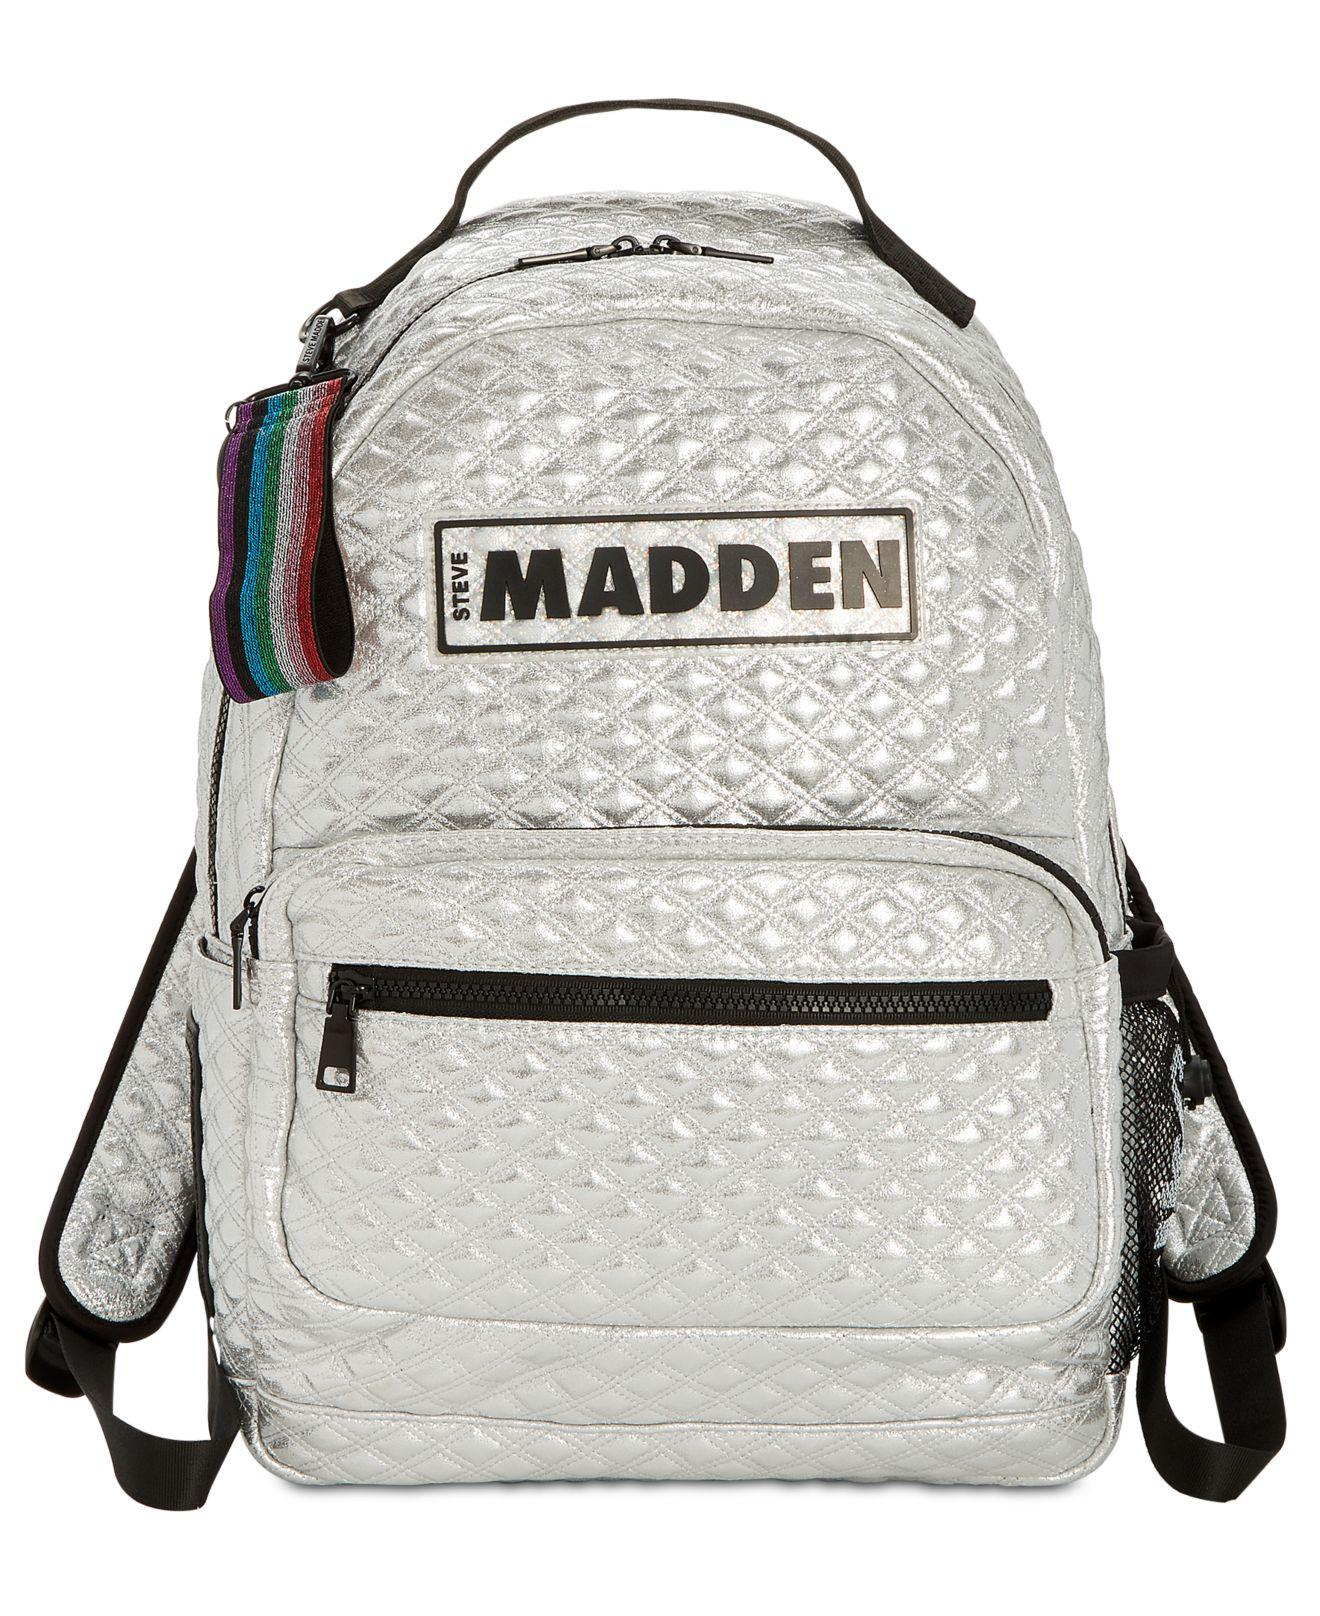 a63f32db9cc5 Lyst - Steve Madden Austin Quilted Backpack in Metallic